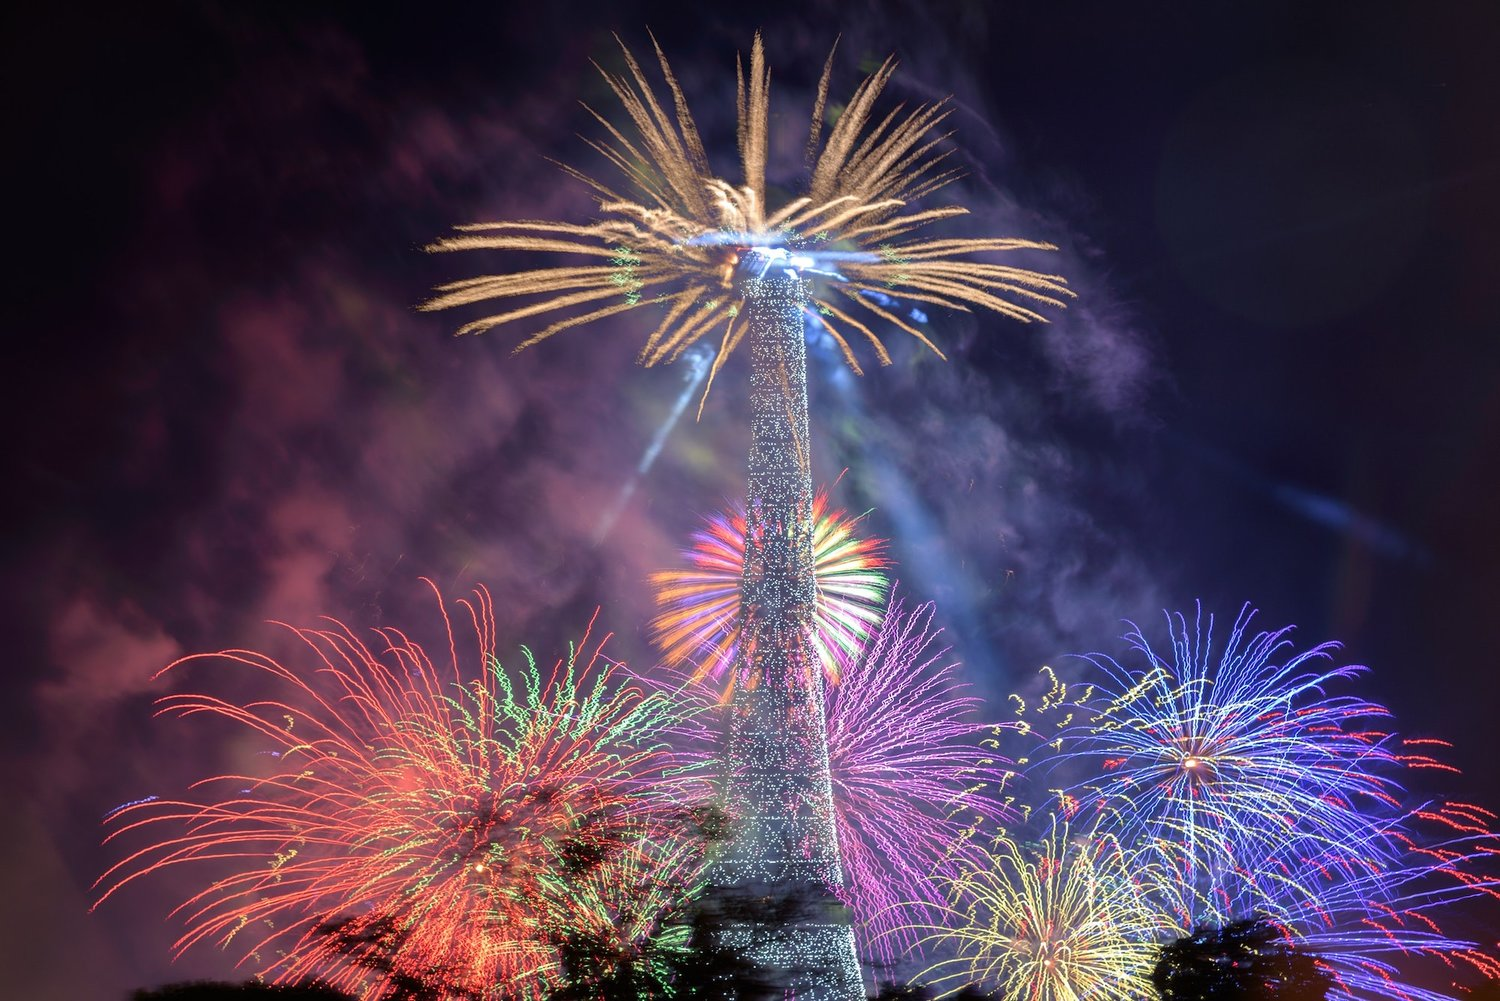 paris-fireworks.jpeg